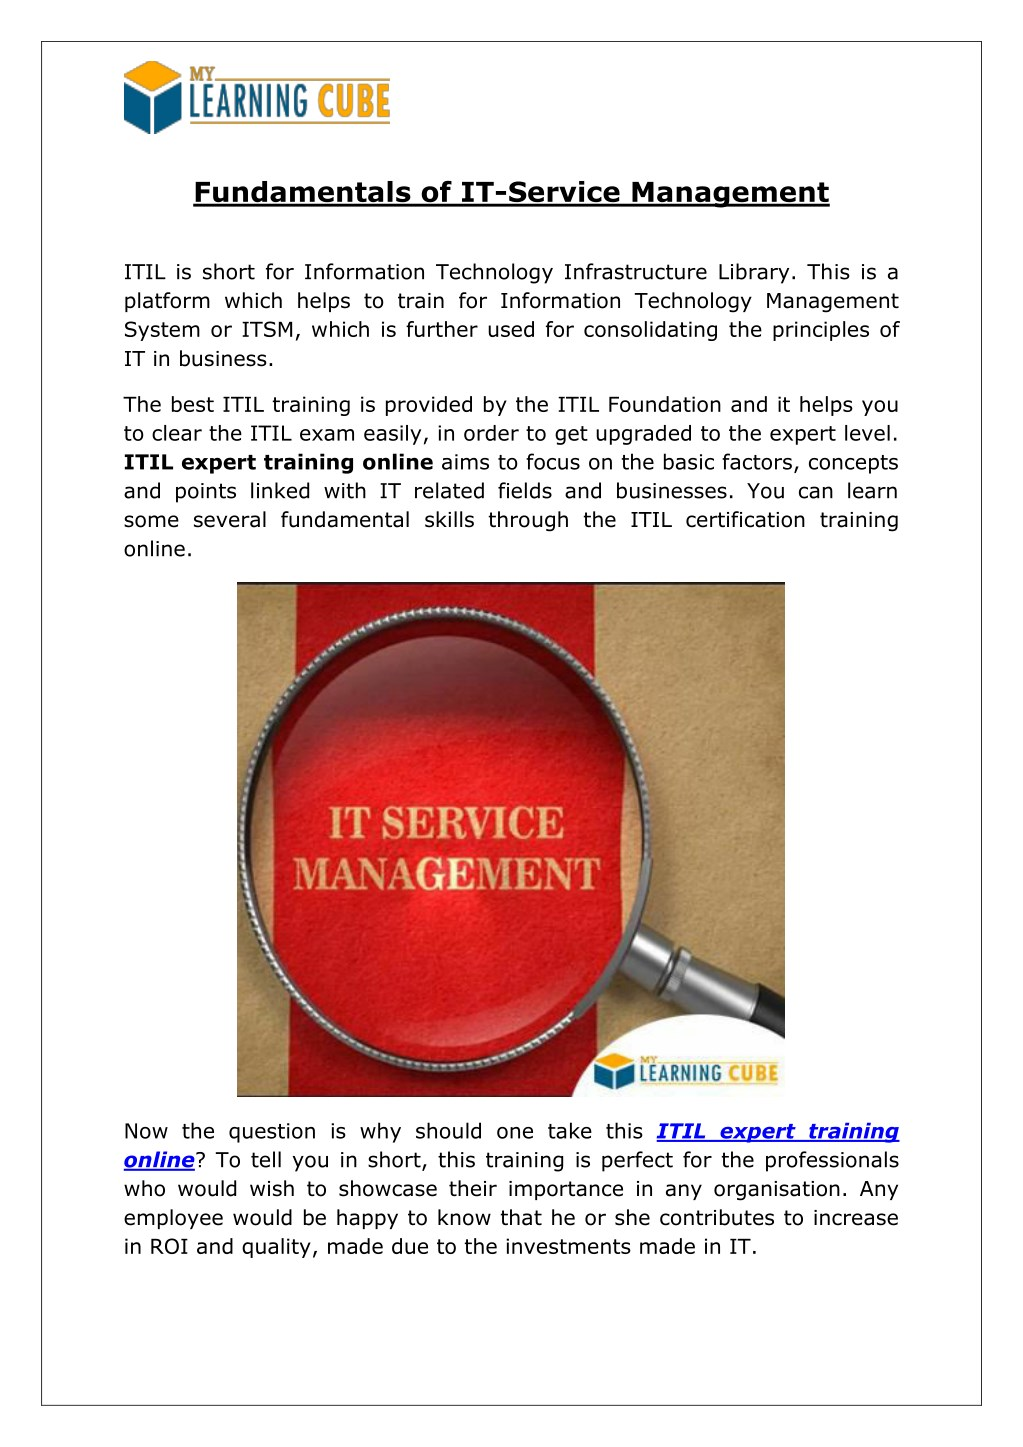 Ppt Fundamentals Of It Service Management Mylearningcube